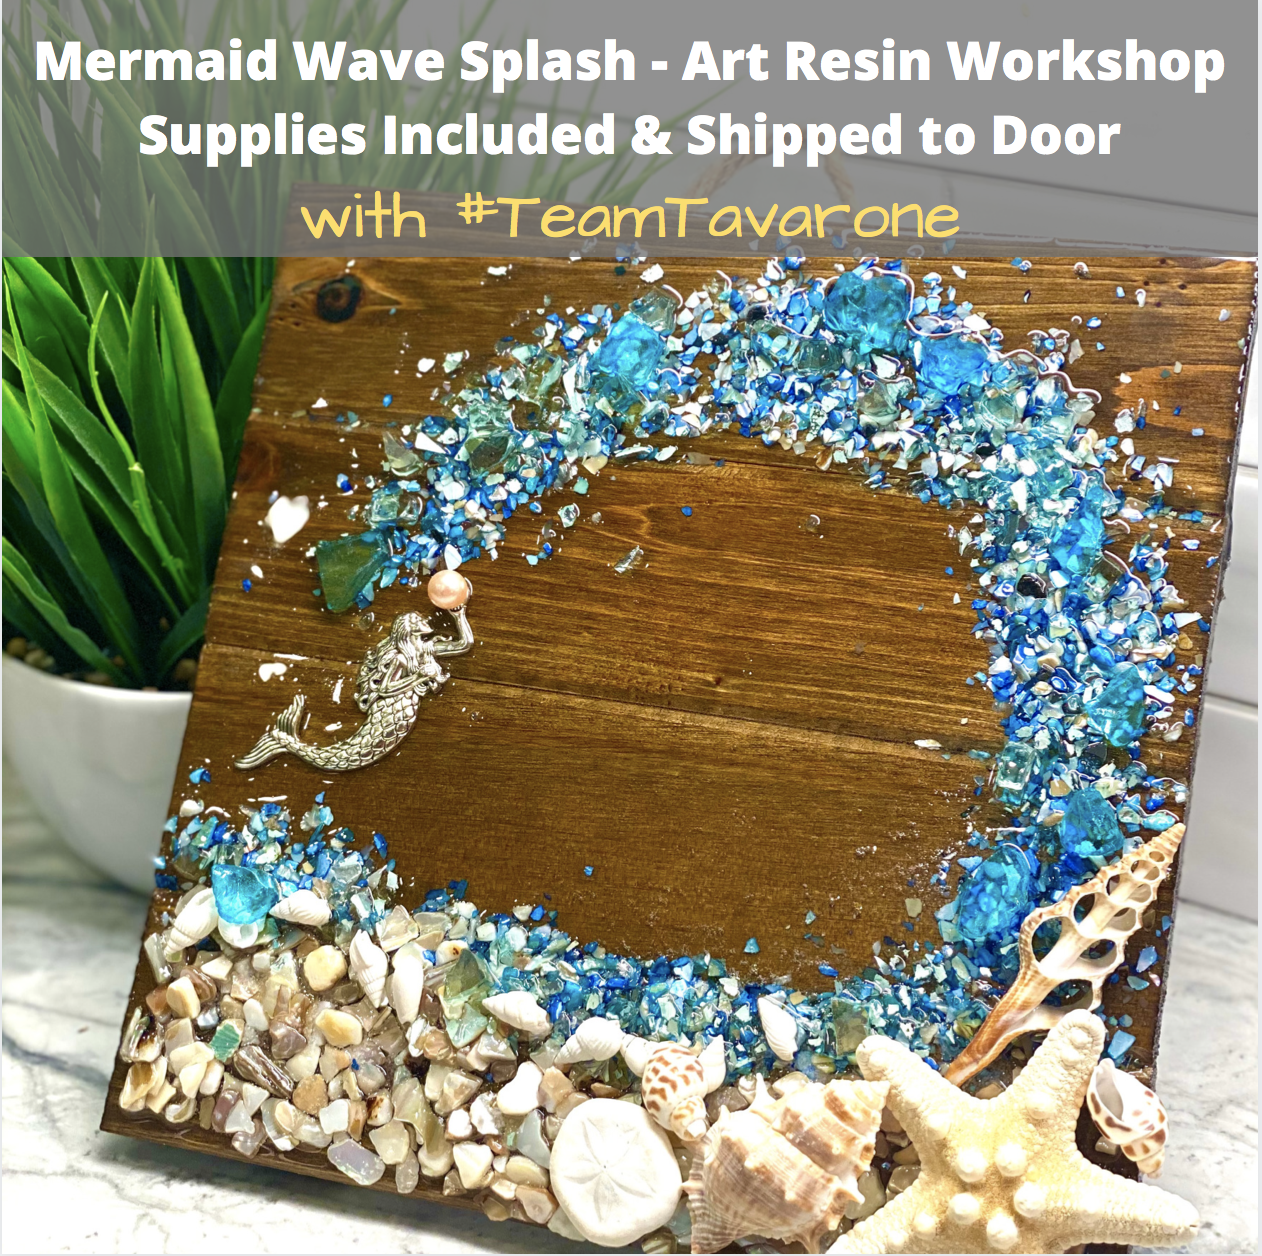 A Mermaid Splash Art Resin Workshop Team Tavarone Event Supplies Shipped to Door experience project by Yaymaker